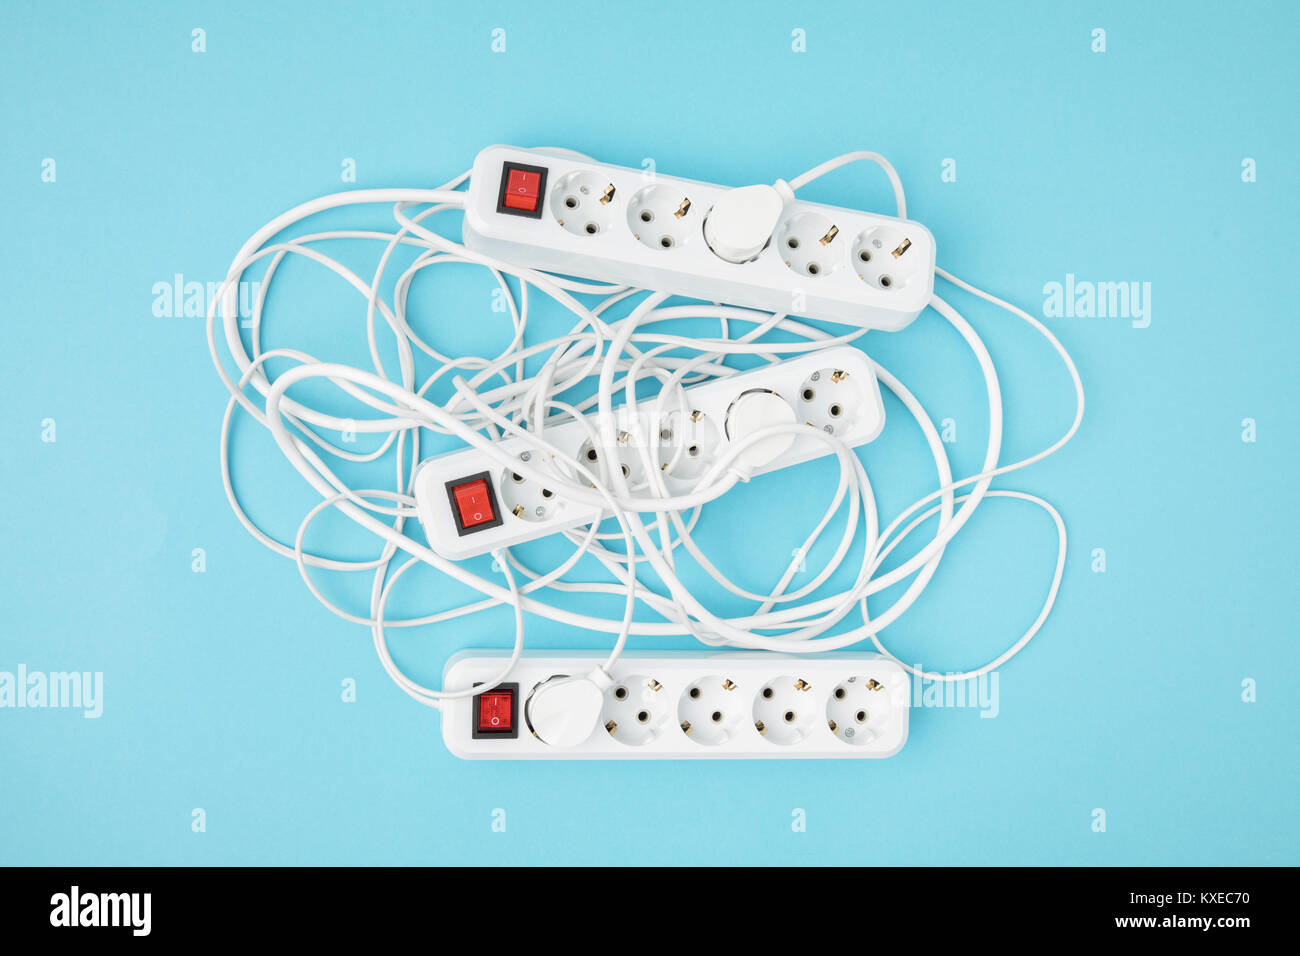 Extension Cords Stock Photos & Extension Cords Stock Images - Alamy